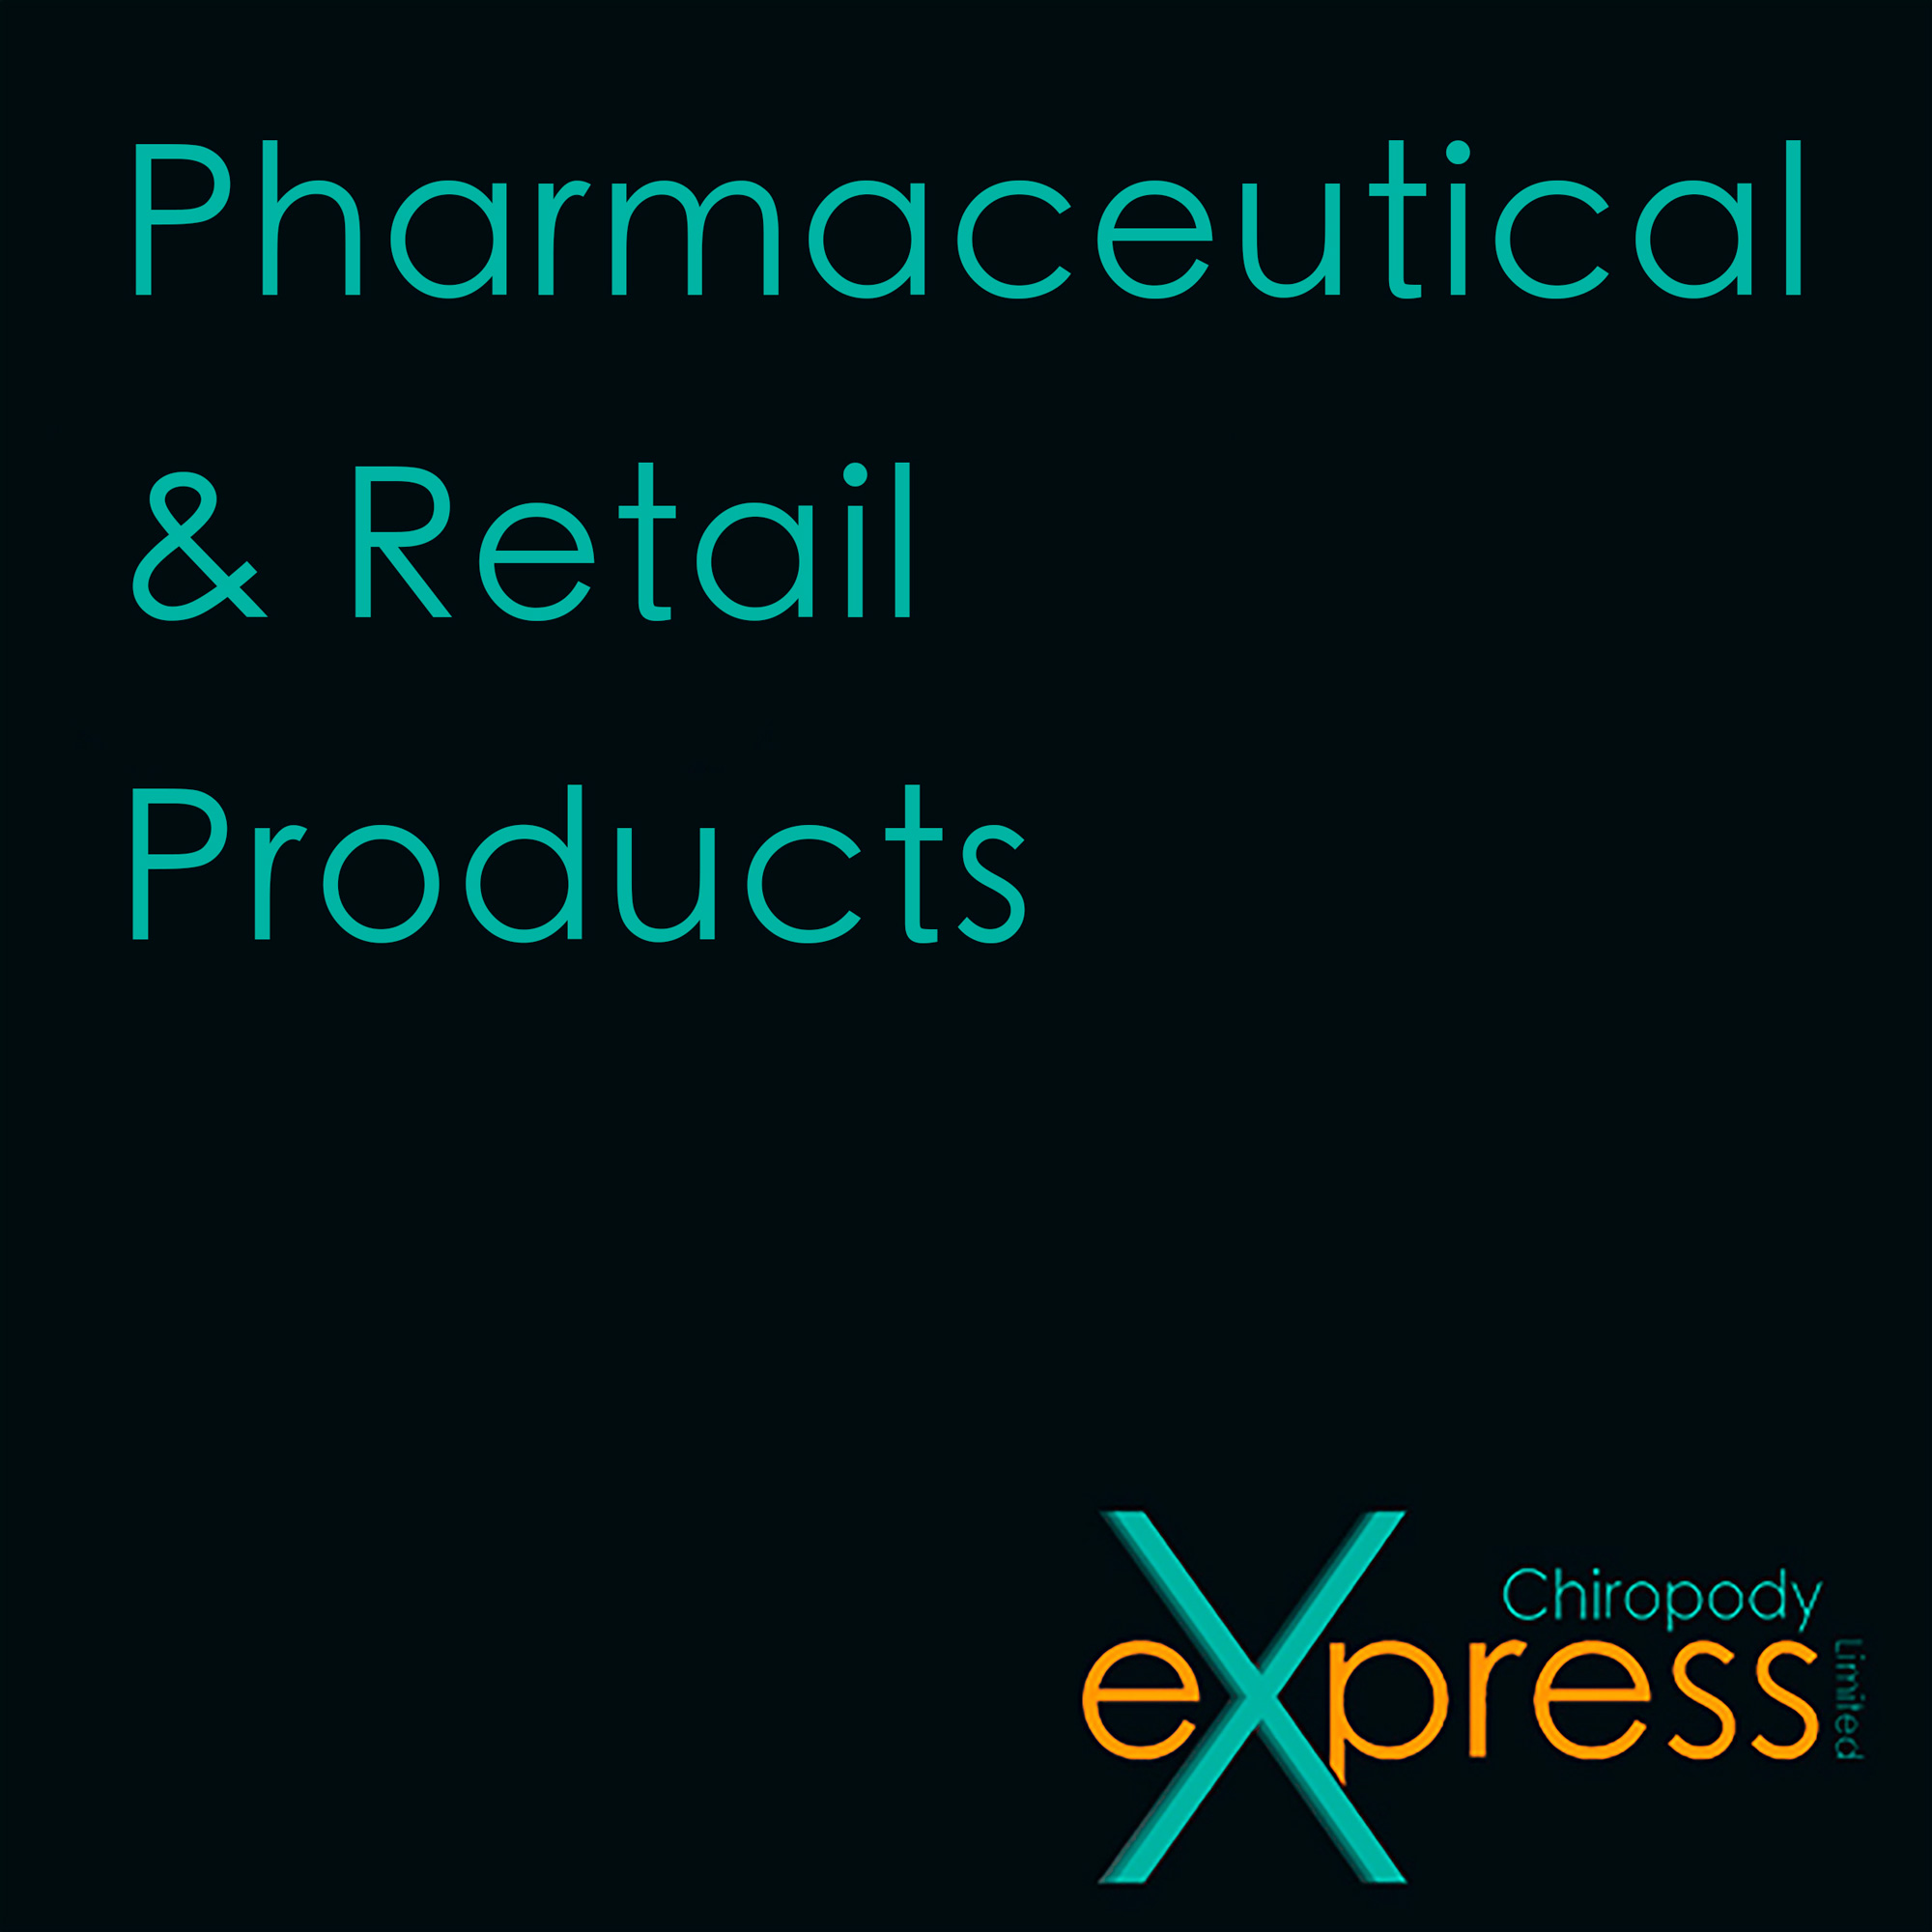 Pharmaceutical, Retail products